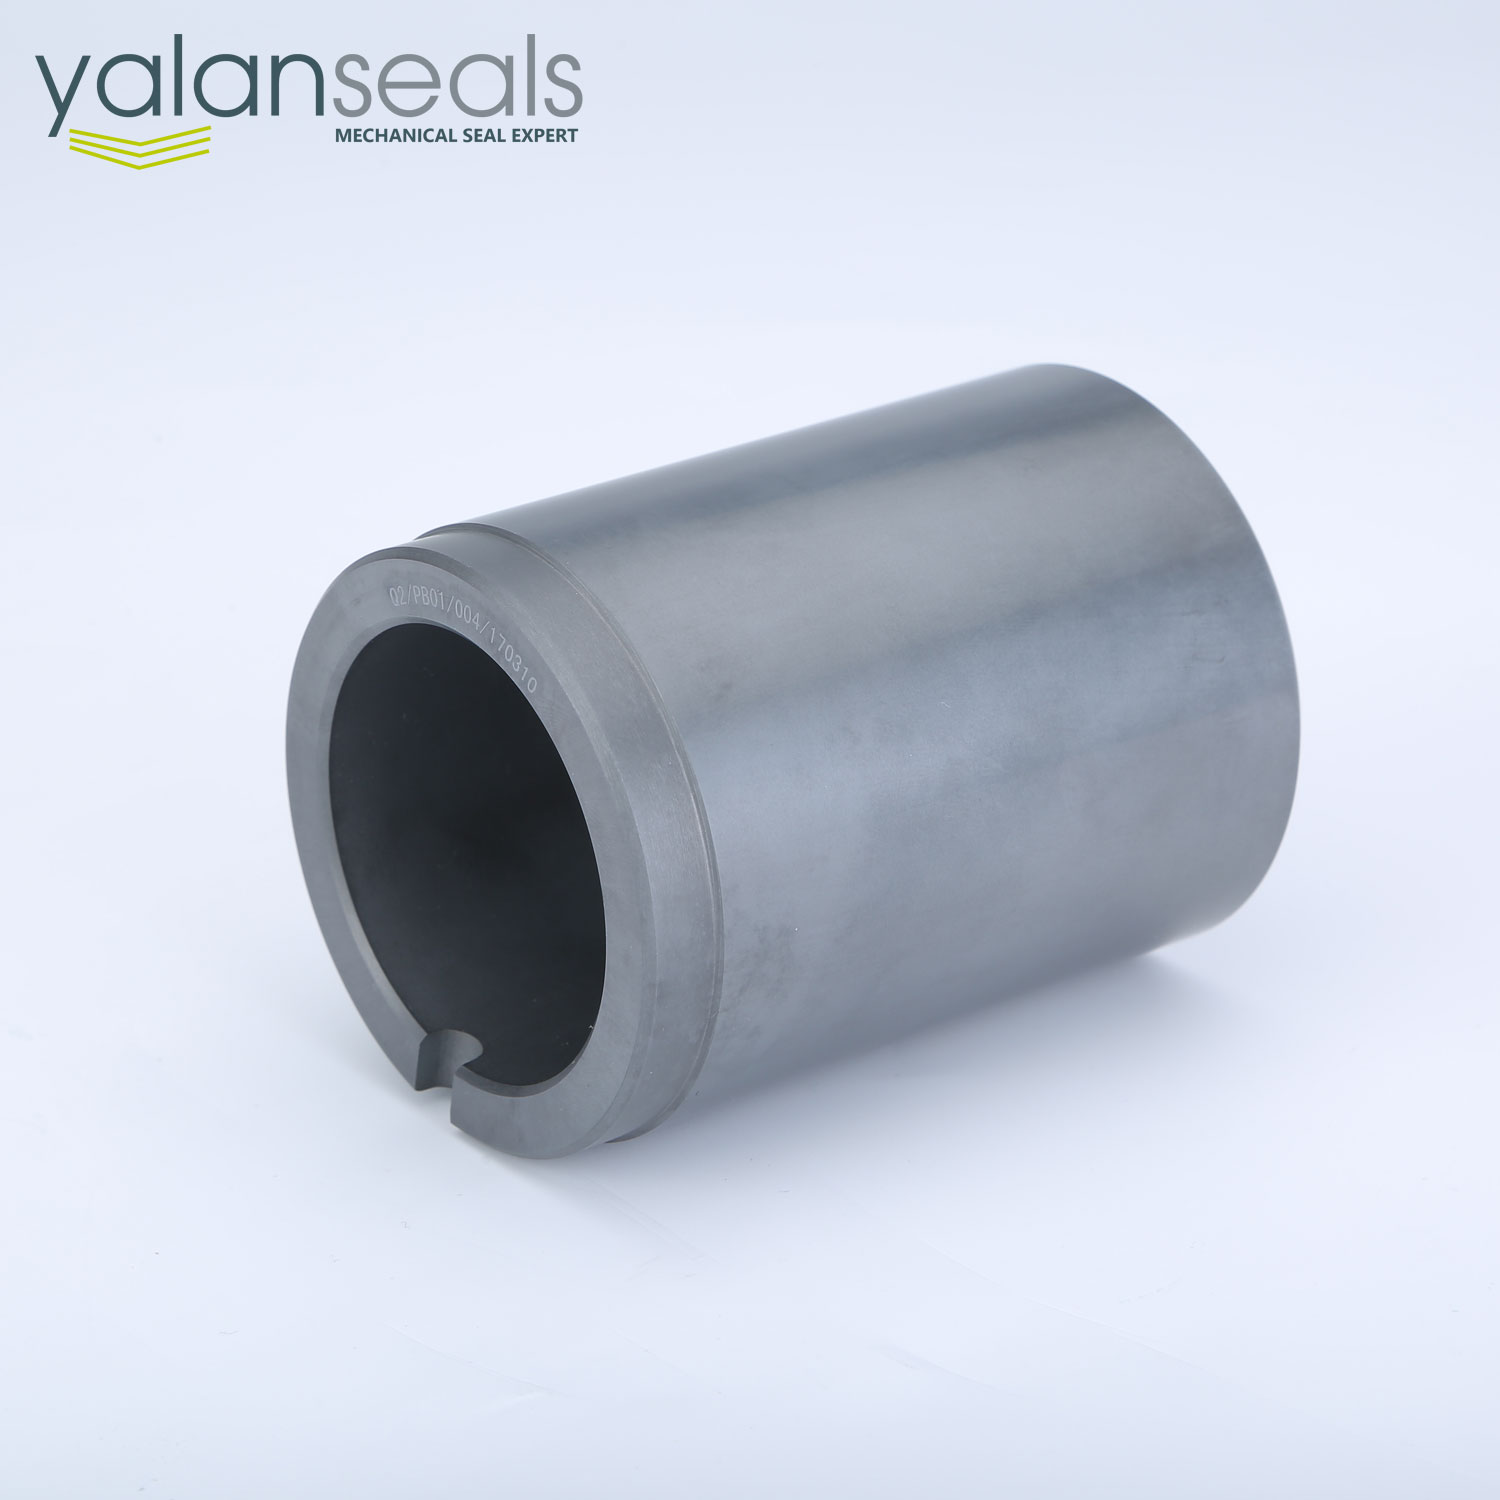 Pressureless Sintered Silicone Carbide Bushings, Shaft Sleeves